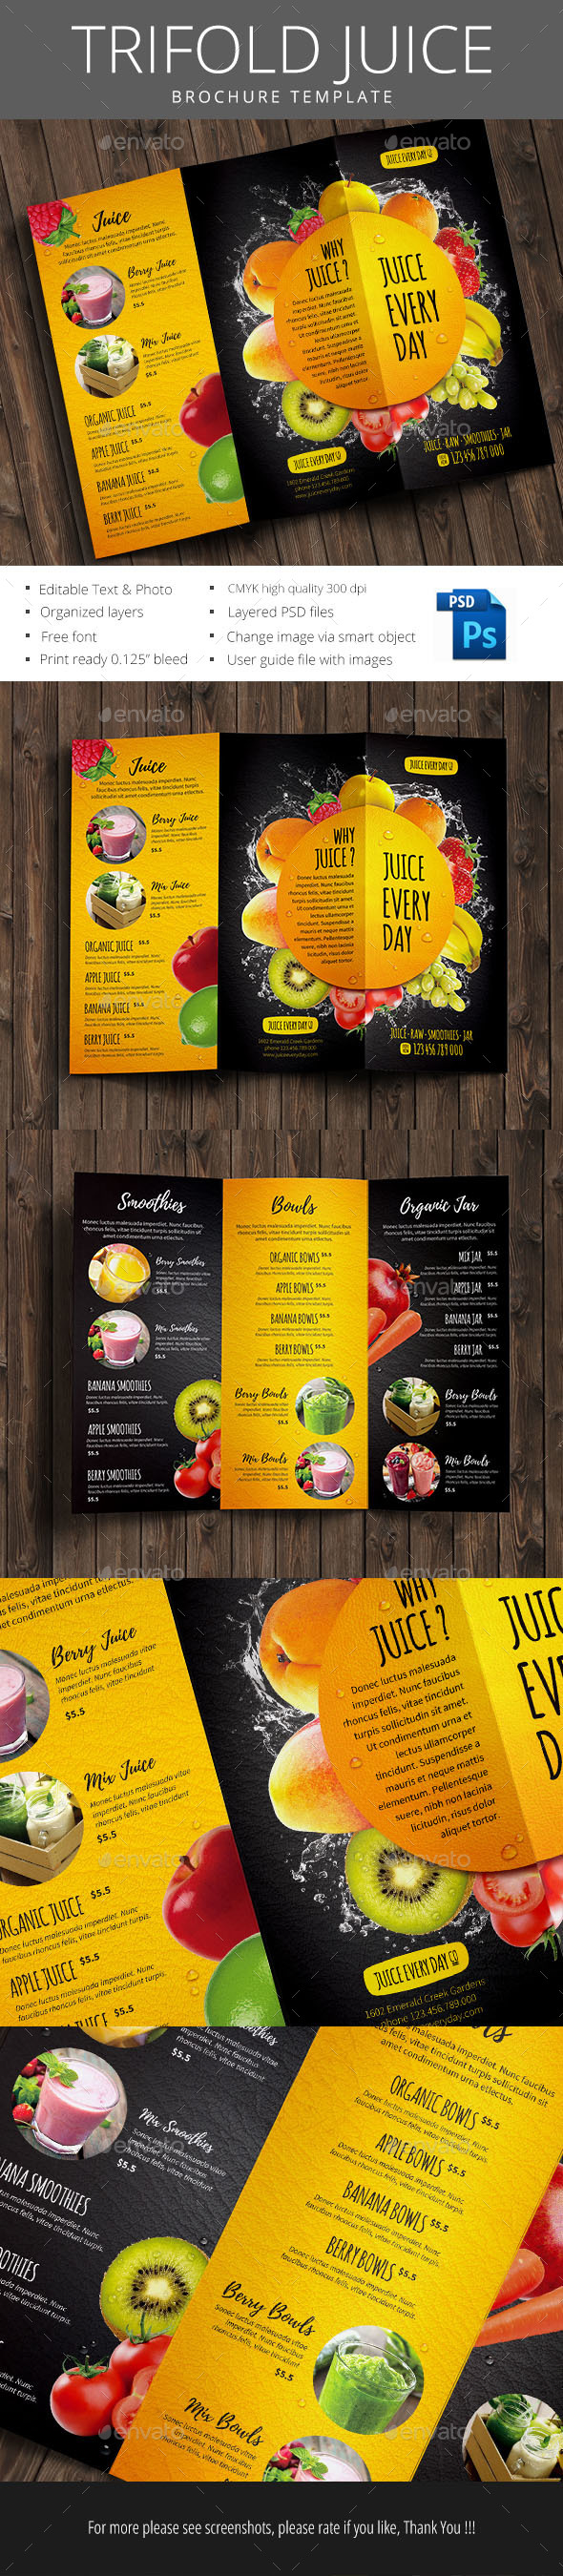 Trifold Juice Brochure - Brochures Print Templates